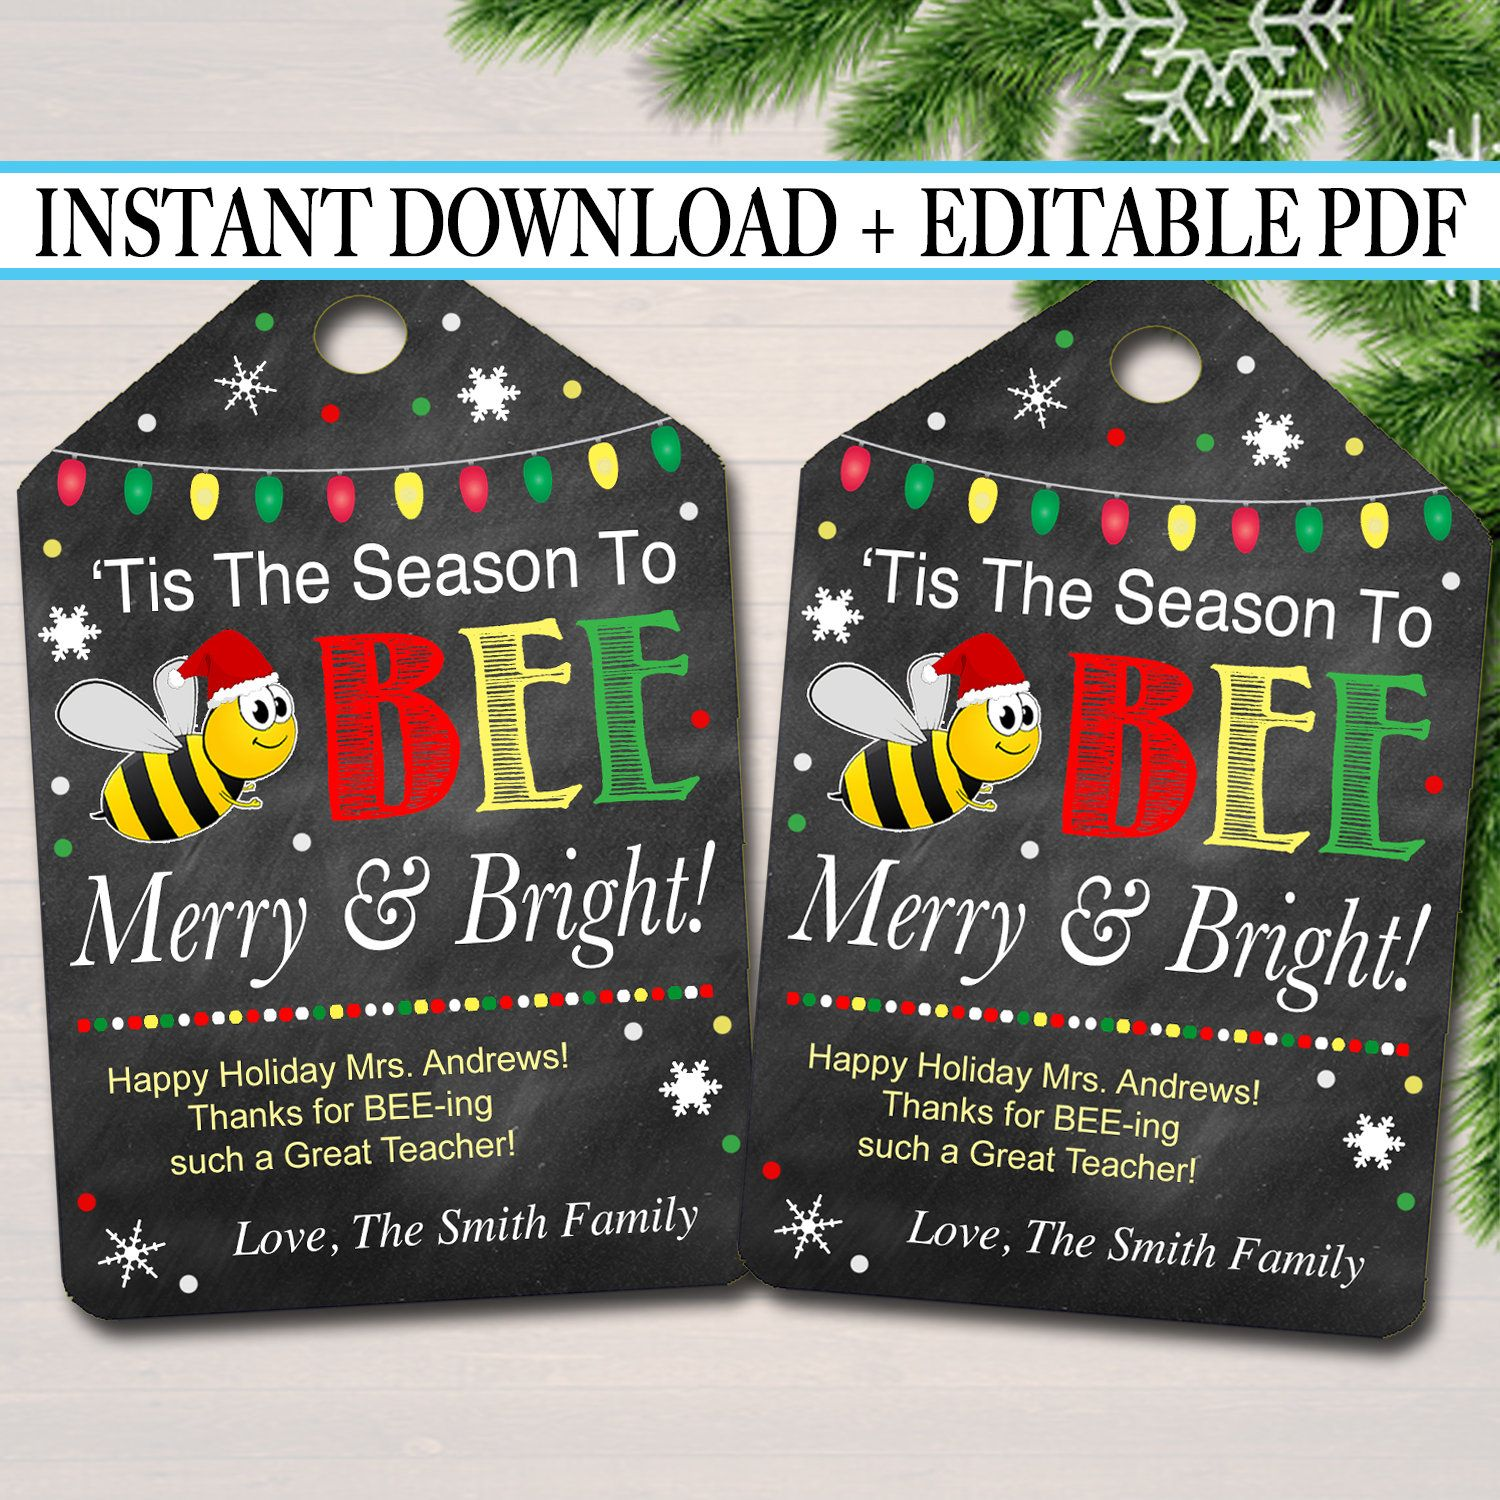 Where Can I Volunteer On Christmas Day 2021 Christmas Gift Tag Chapstick Bee Tag Volunteer Thank You Gift Pta Pto Staff Teacher Holiday Balm Honey Favor Printable Instant Editable In 2021 Christmas Gift Tags Staff Gifts Bee Tags